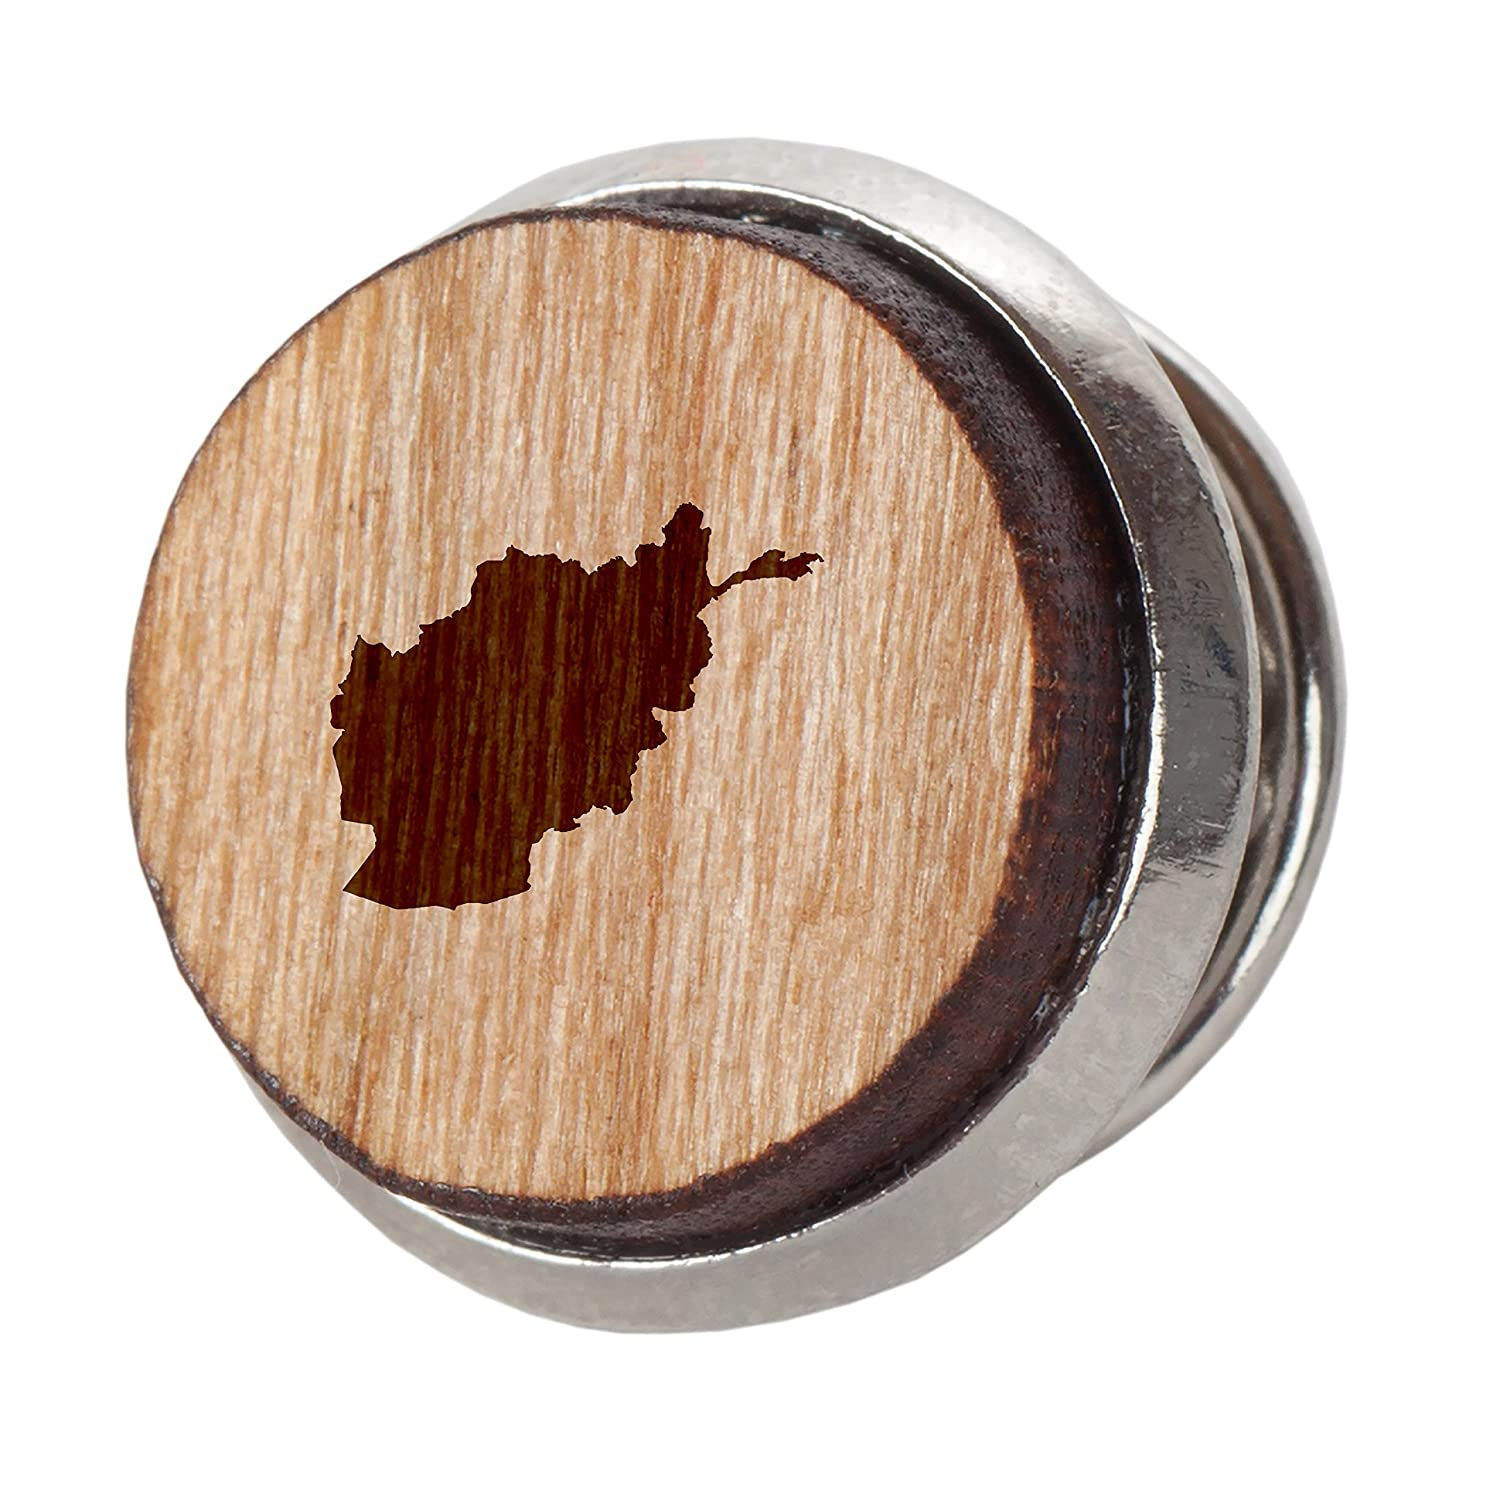 Engraved Tie Tack Gift Afghanistan Stylish Cherry Wood Tie Tack 12Mm Simple Tie Clip with Laser Engraved Design